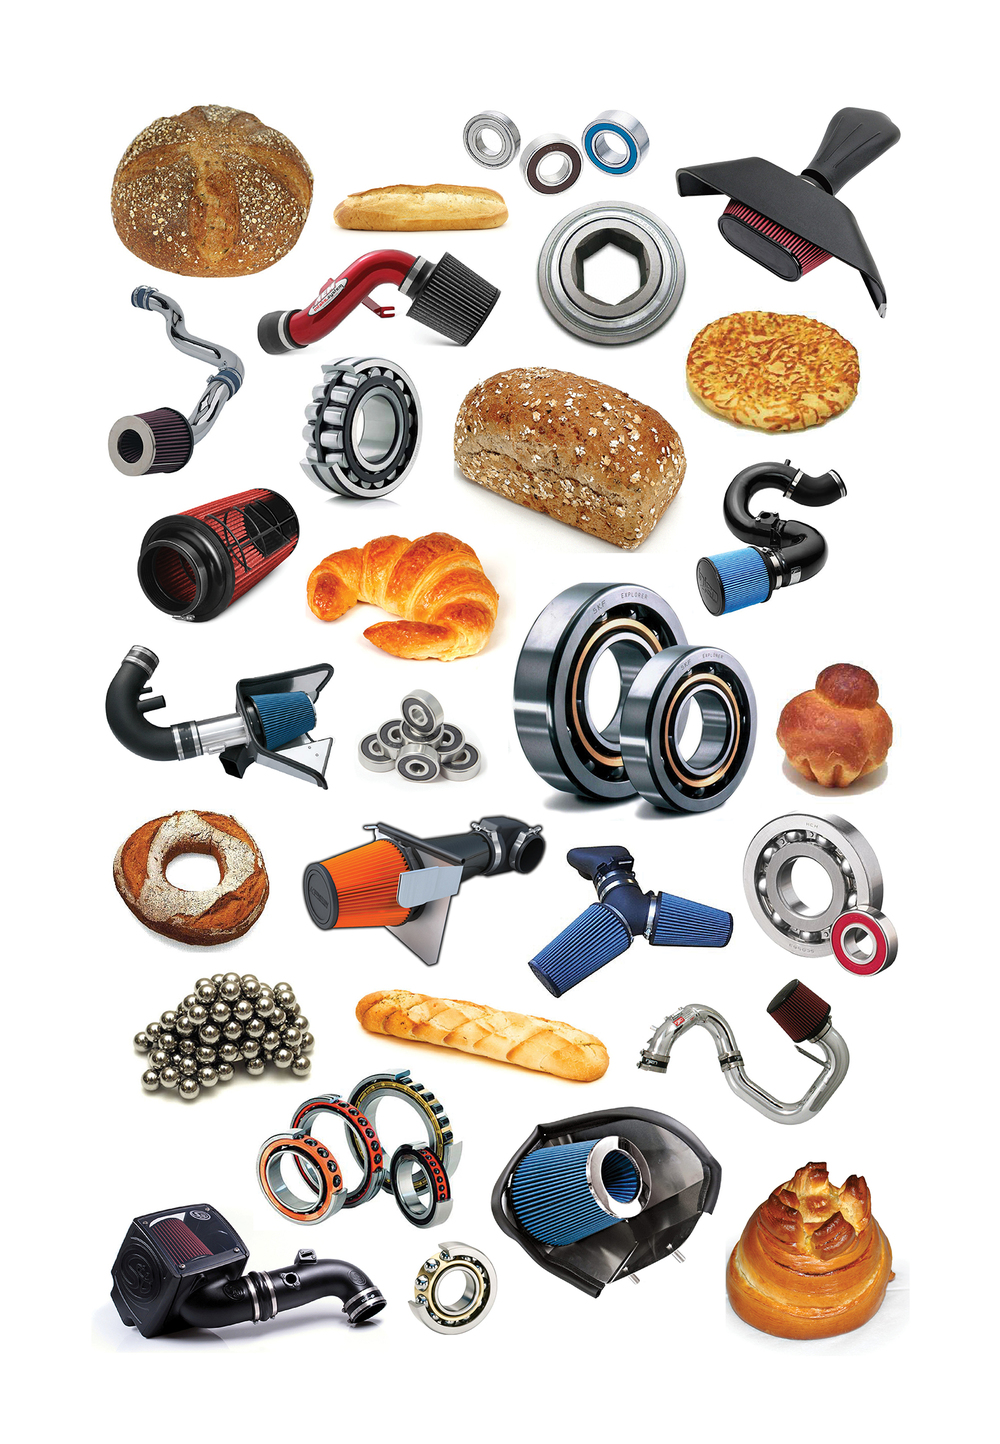 Jeff Gibson Set of two untitled prints (Bearings, bread, filters), 2014 Archival inkjet print Ed. 1 of 3